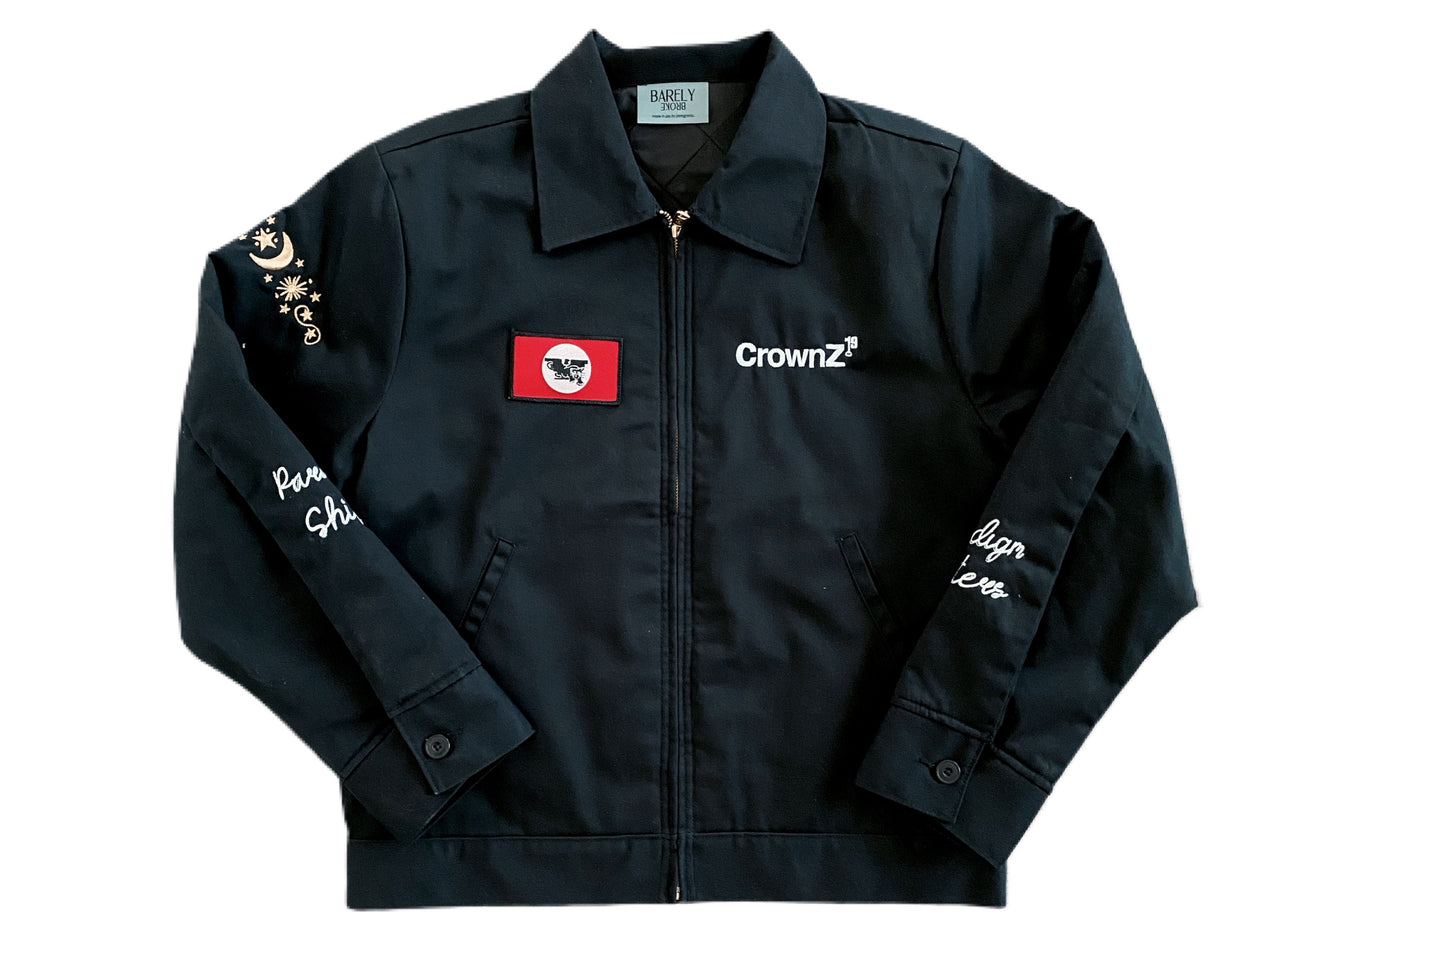 BARELY BROKE X 19KEYS LIMITED EDITION WORK JACKET